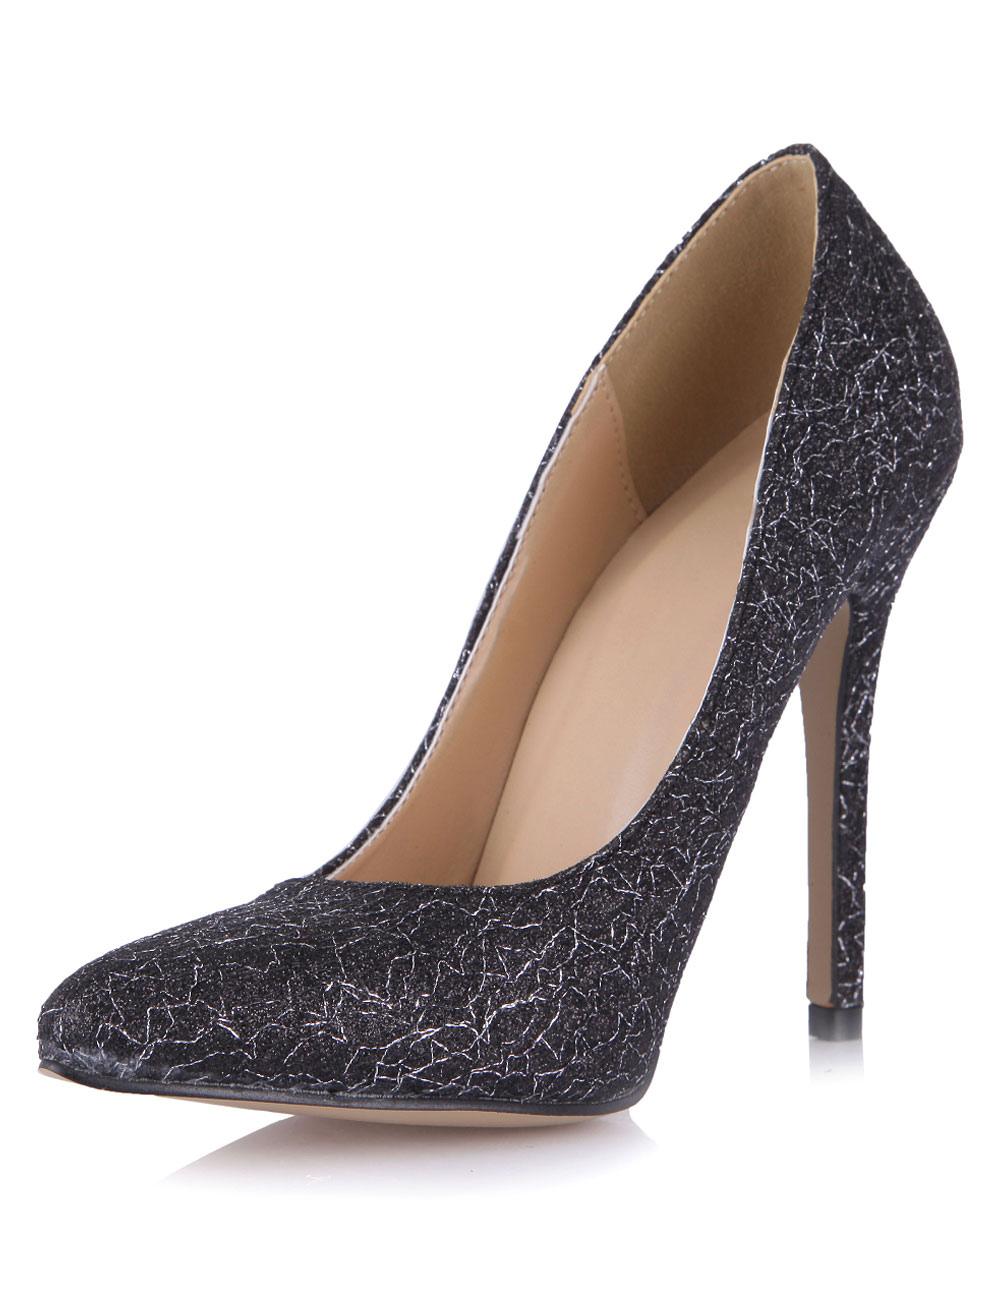 Buy Black Sequined Stiletto Heel Sexy Pointy Toe Heels for $44.64 in Milanoo store